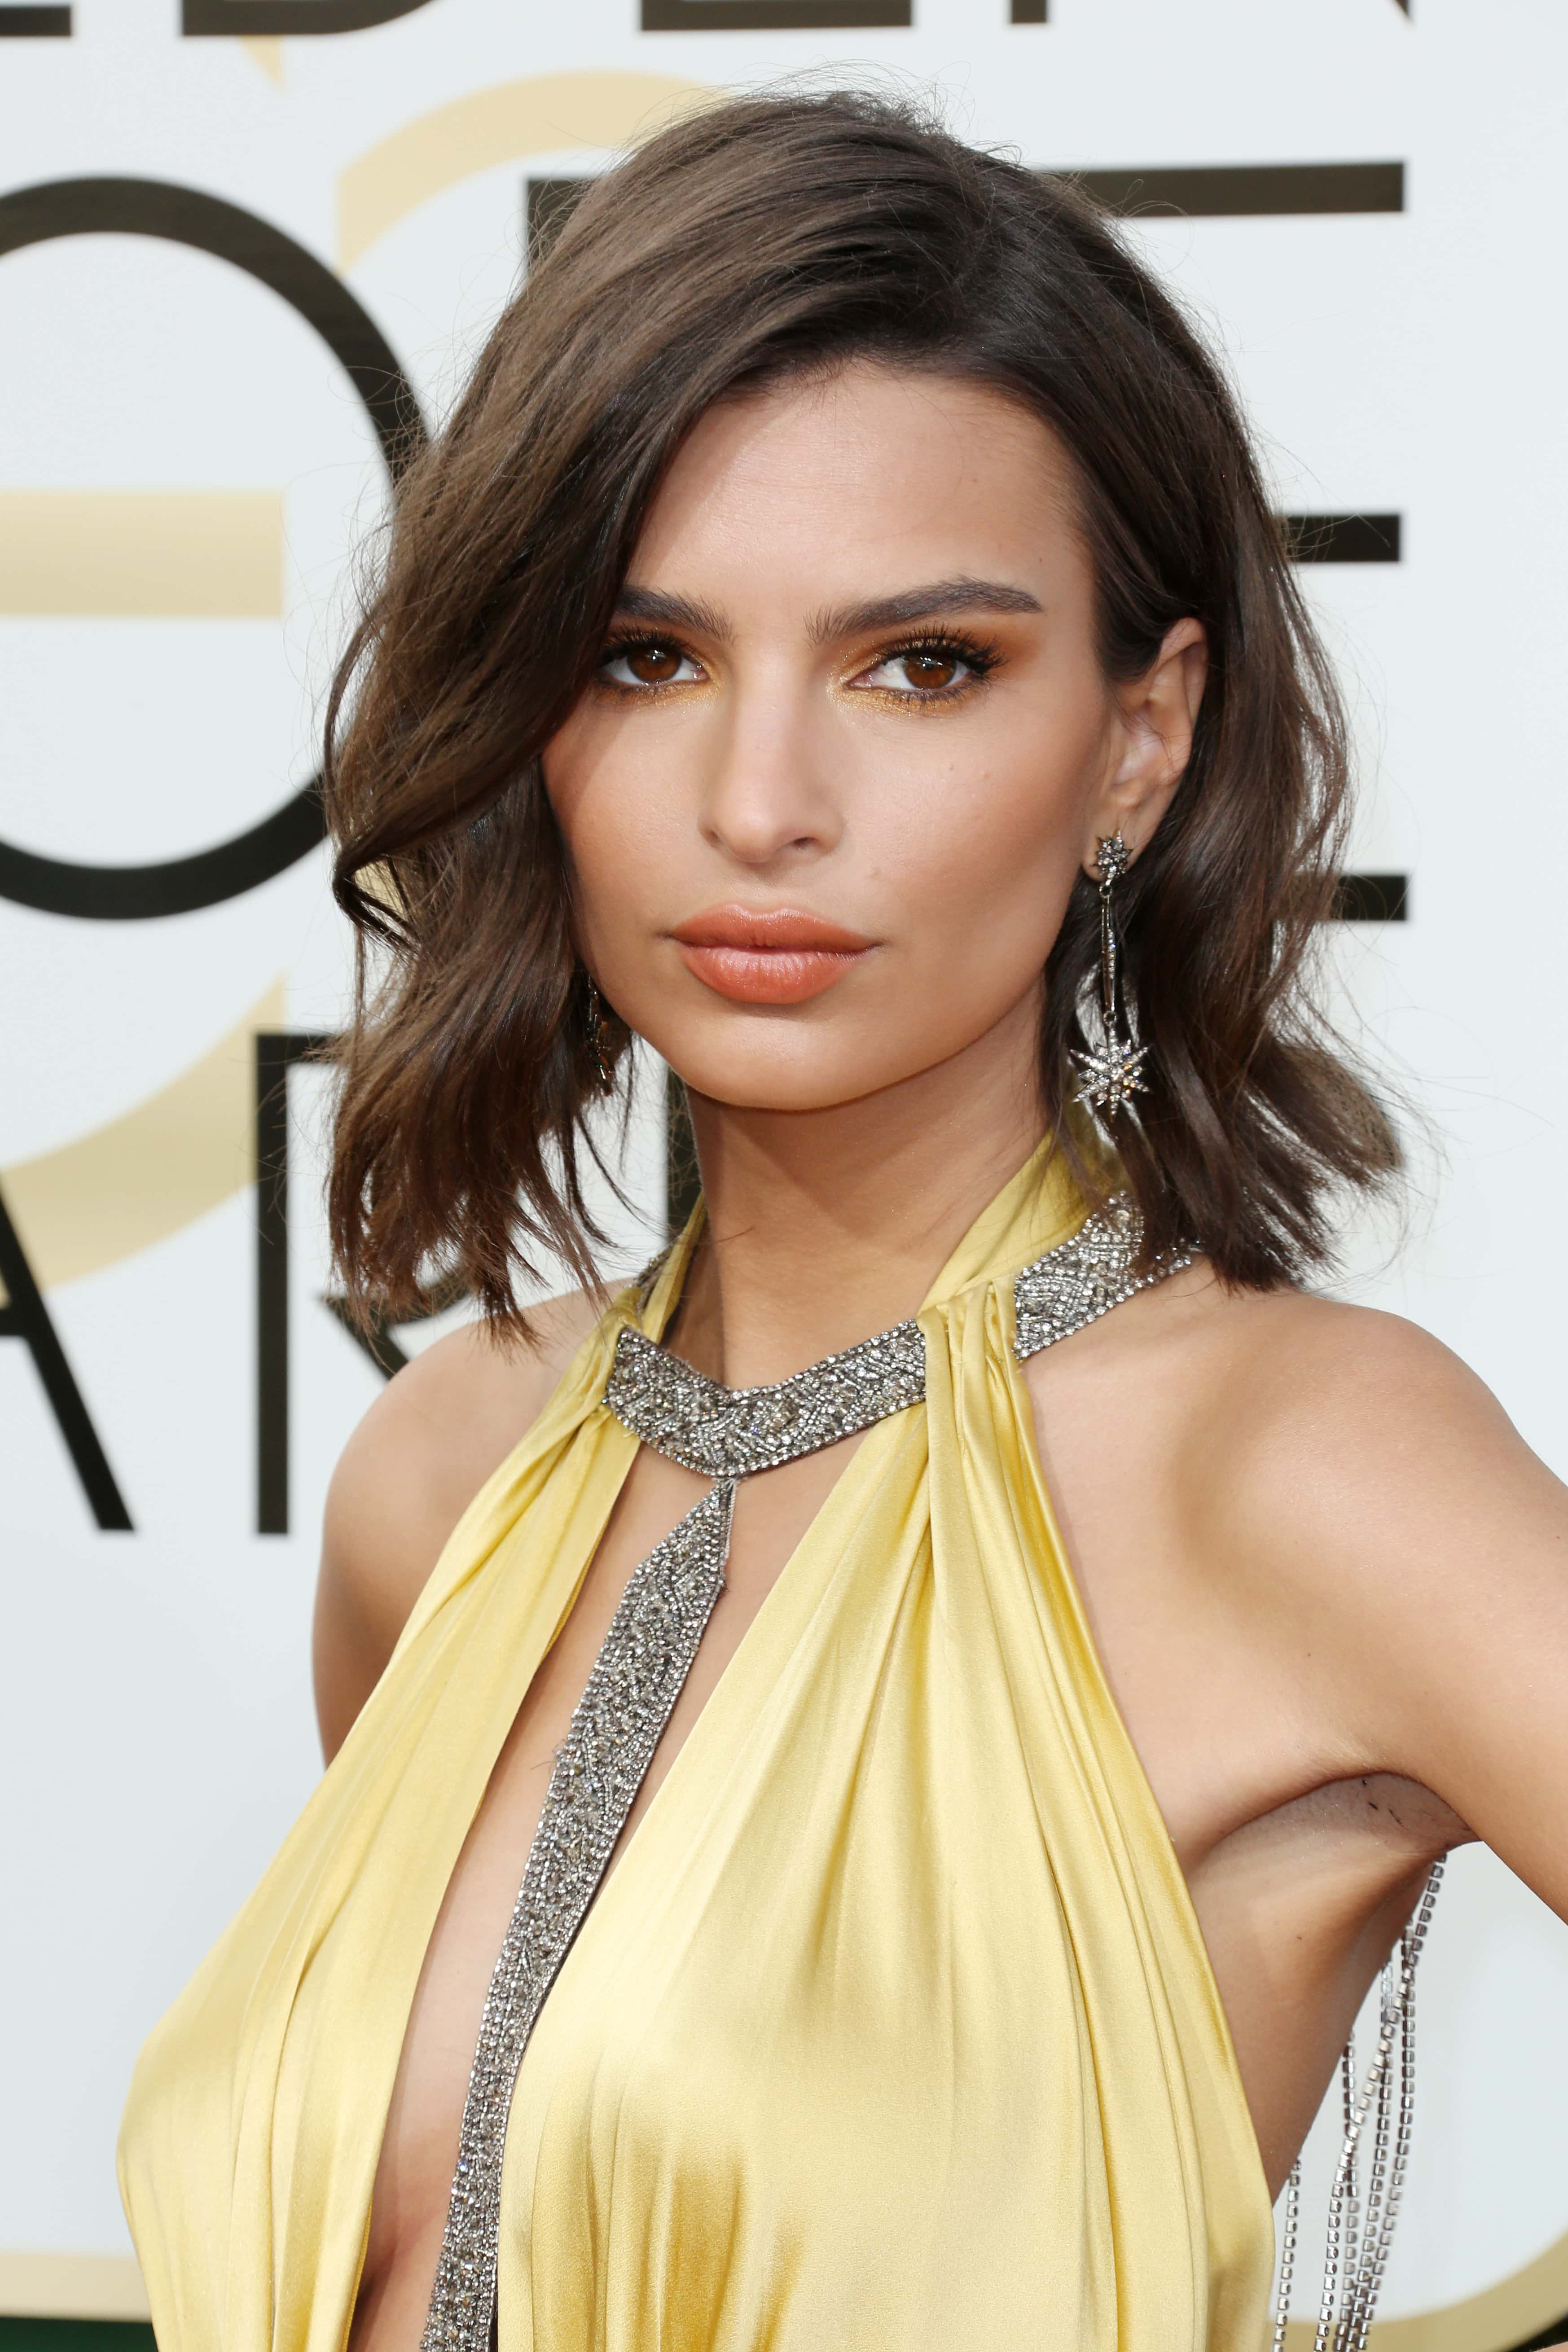 From lily collins hairstyles 2017 best haircuts and hair colors - Golden Globes 2017 Hairstyle Emily Ratajkowski Wavy Brown Bob